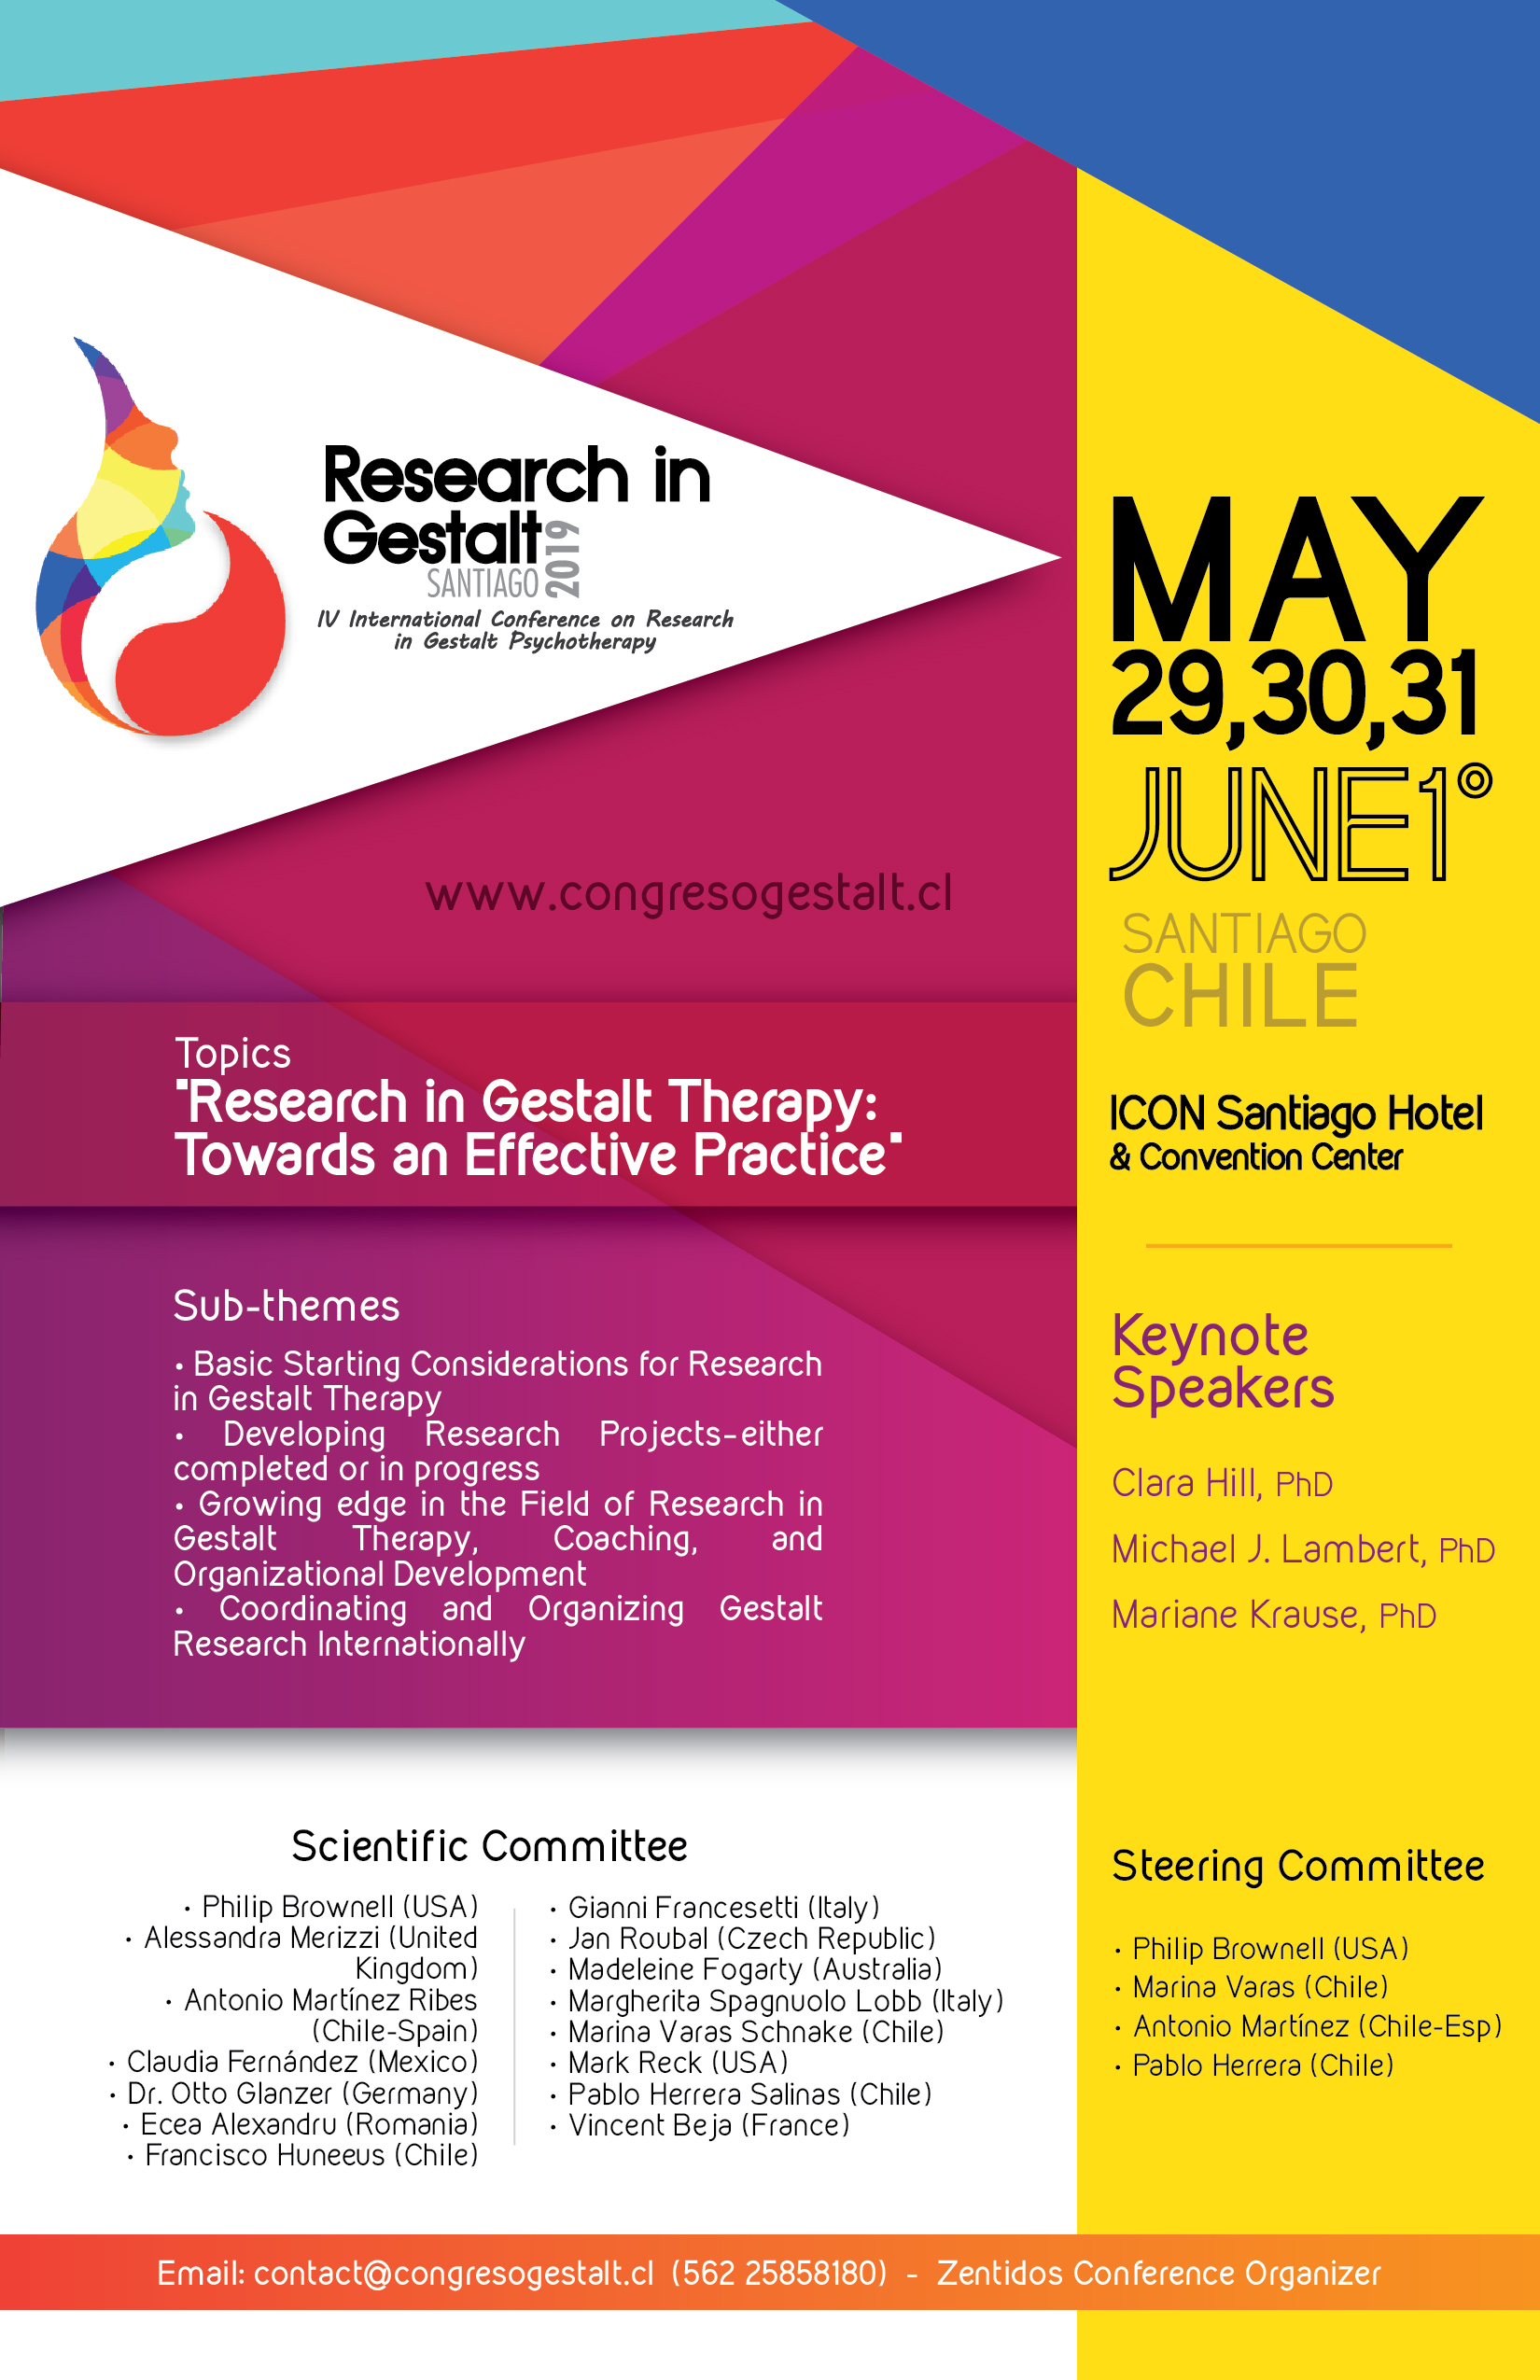 Research in Gestalt 2019